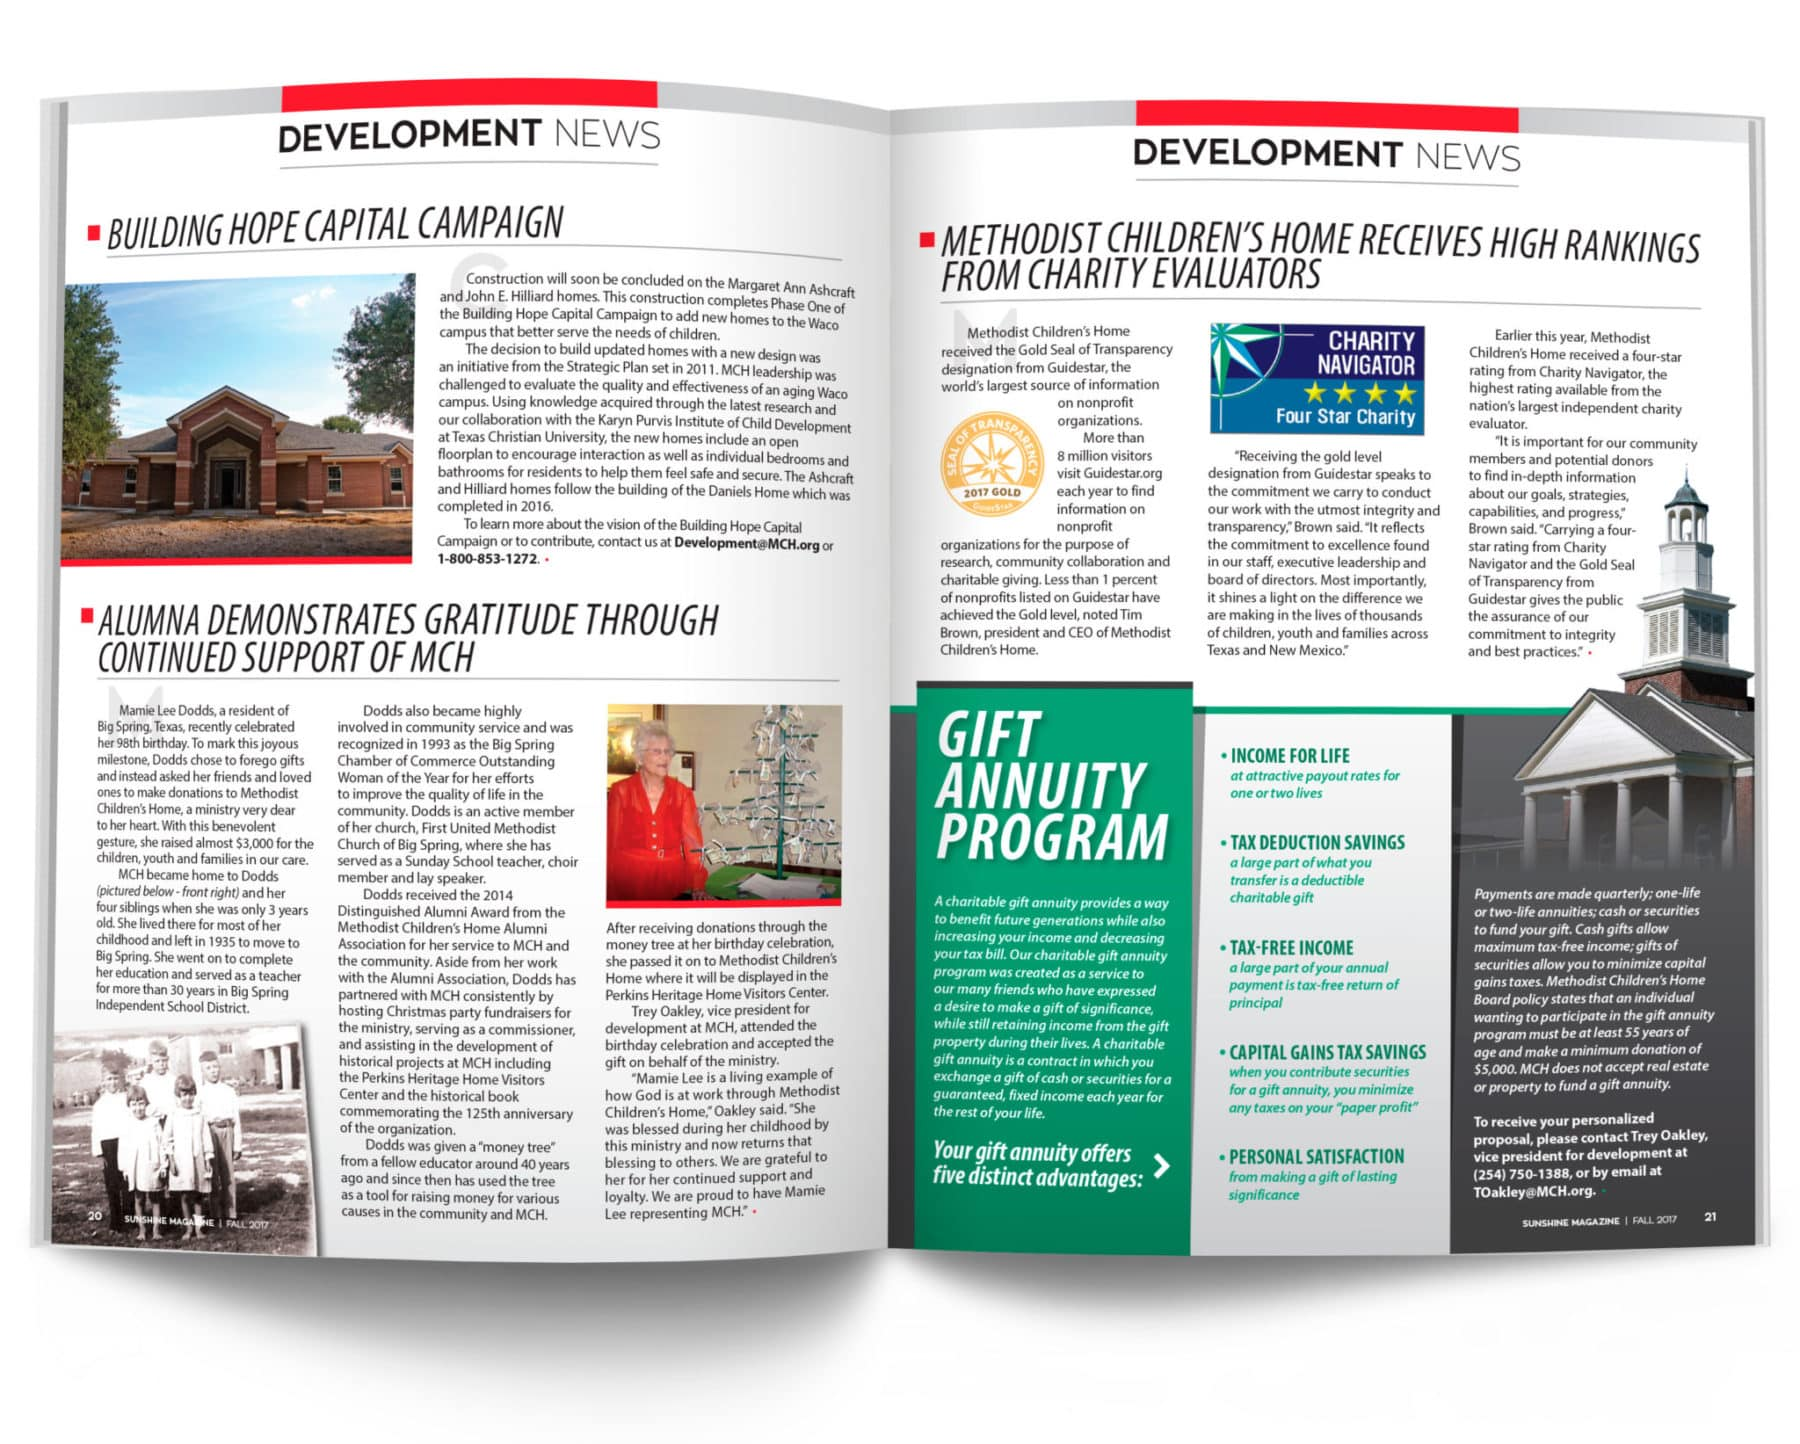 Magazine Spread - Development News